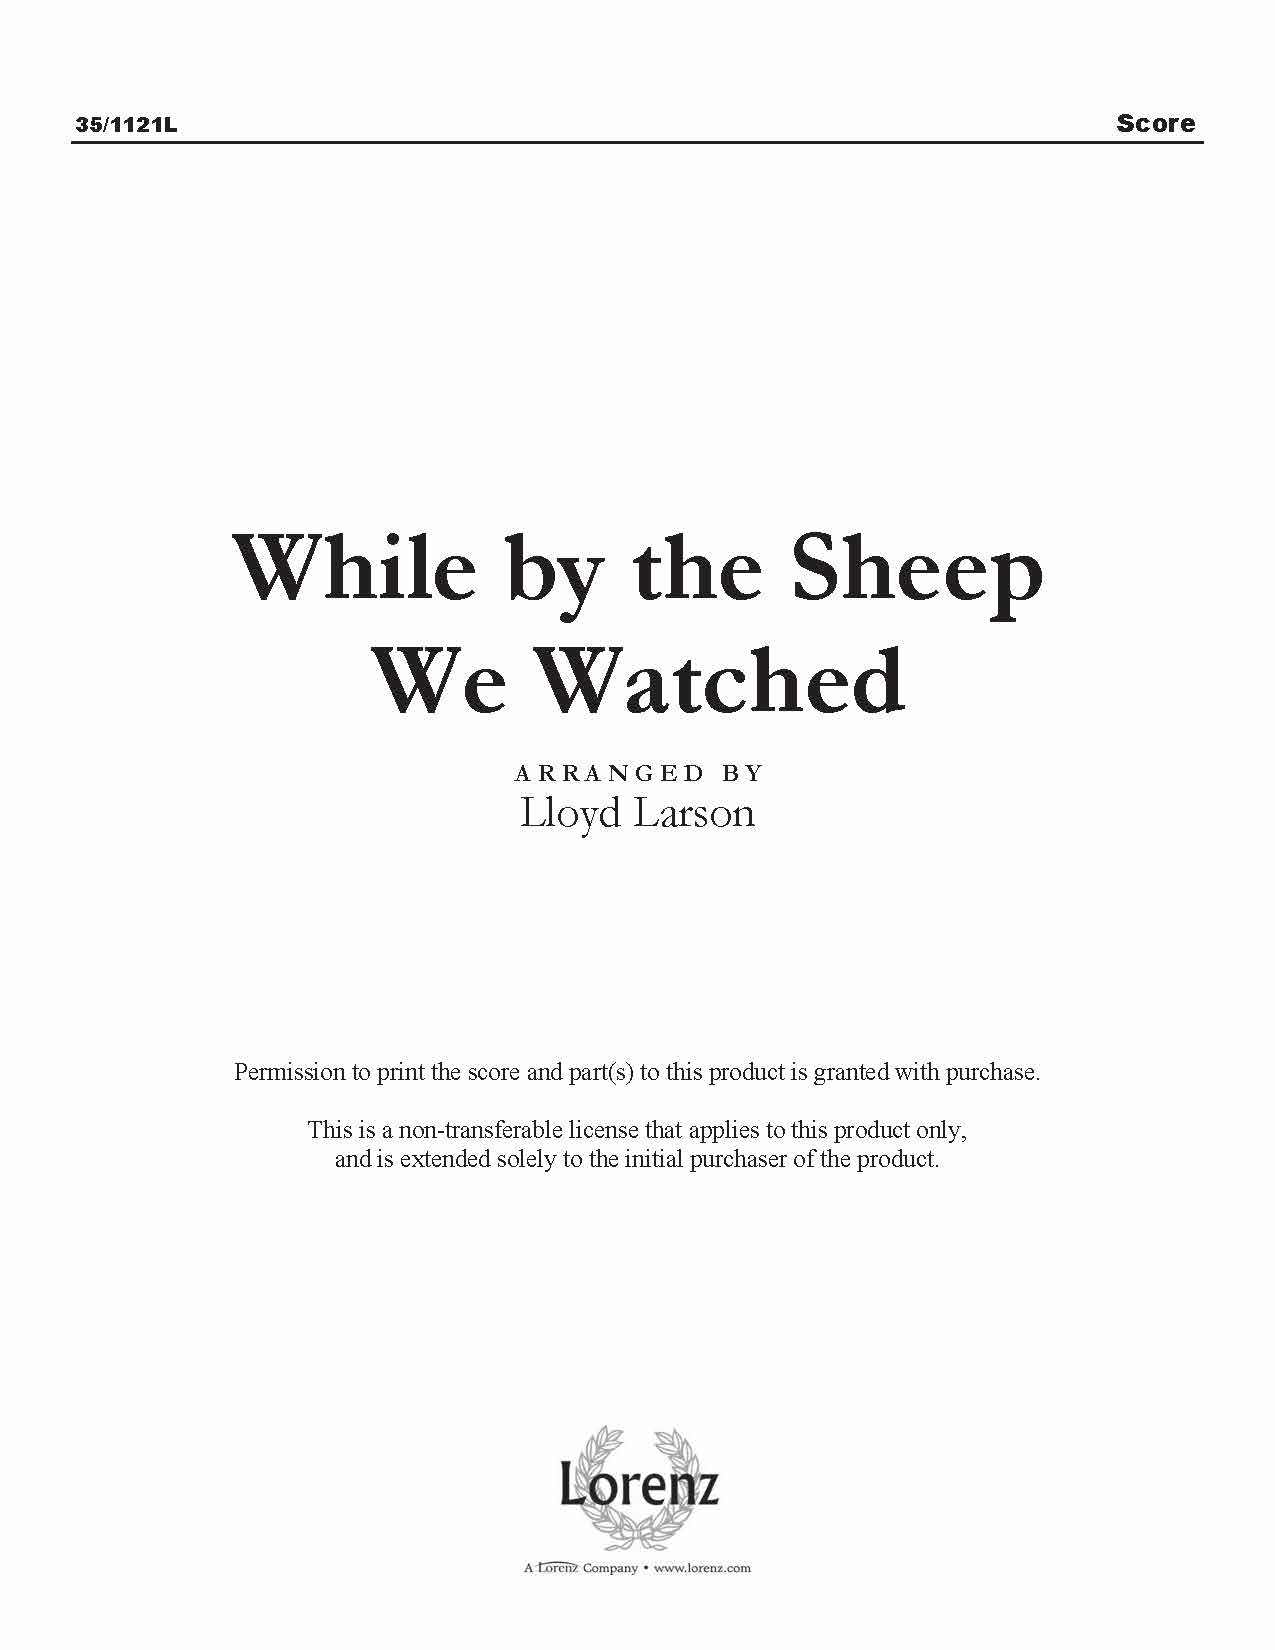 While by the Sheep We Watched (Digital Delivery)